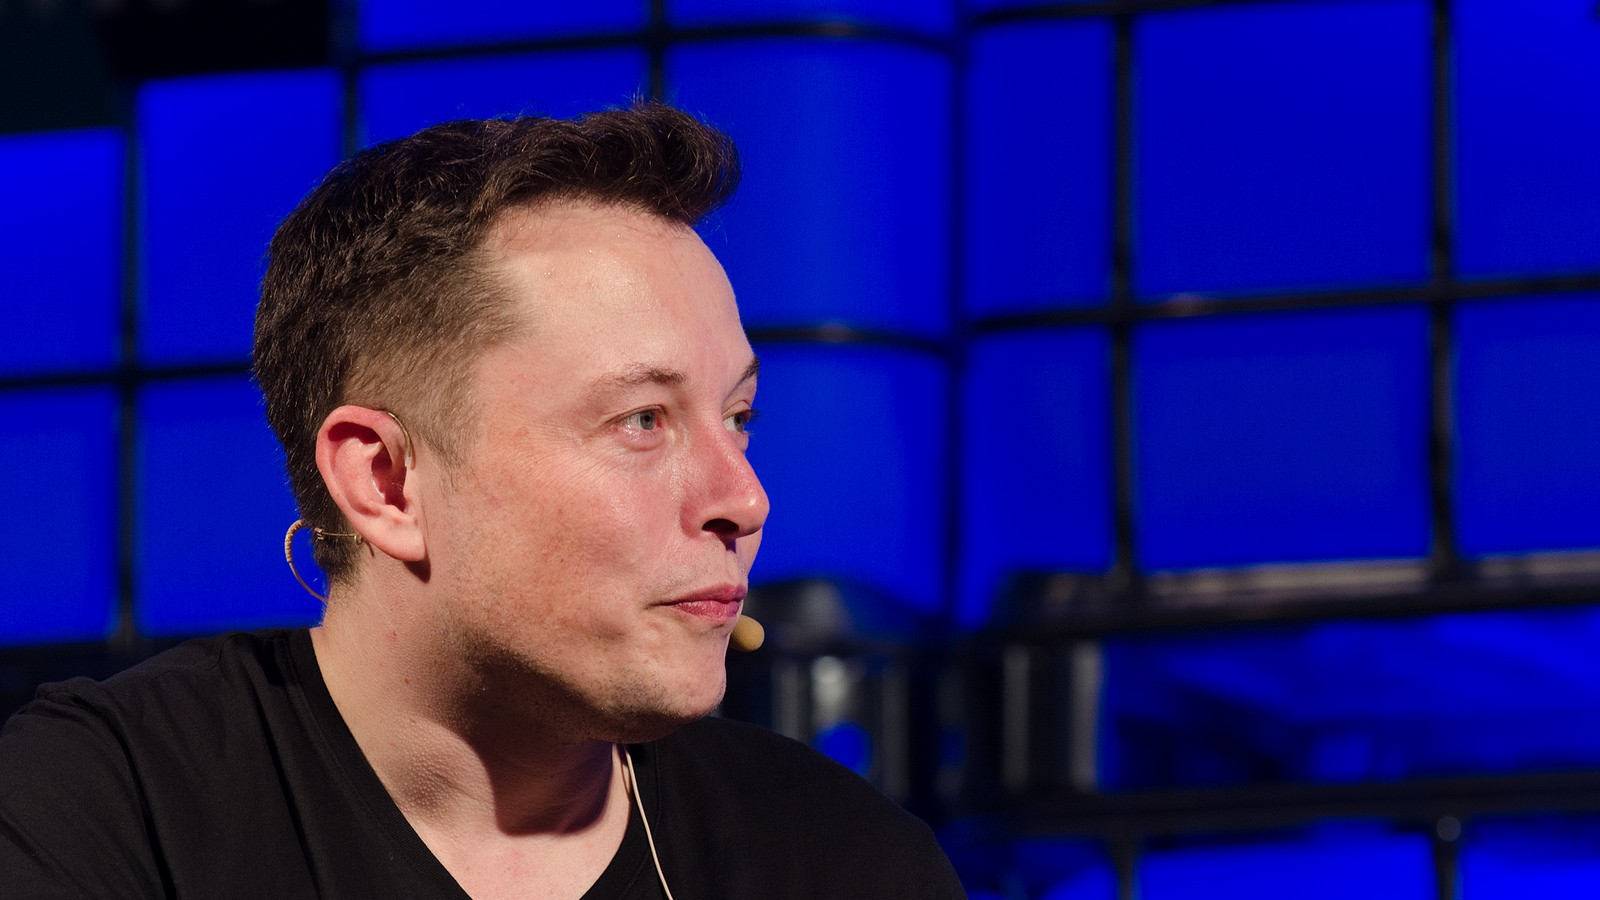 Elon Musk Critic Sues Tesla, Says Musk's 'Agents' Hacked His Twitter